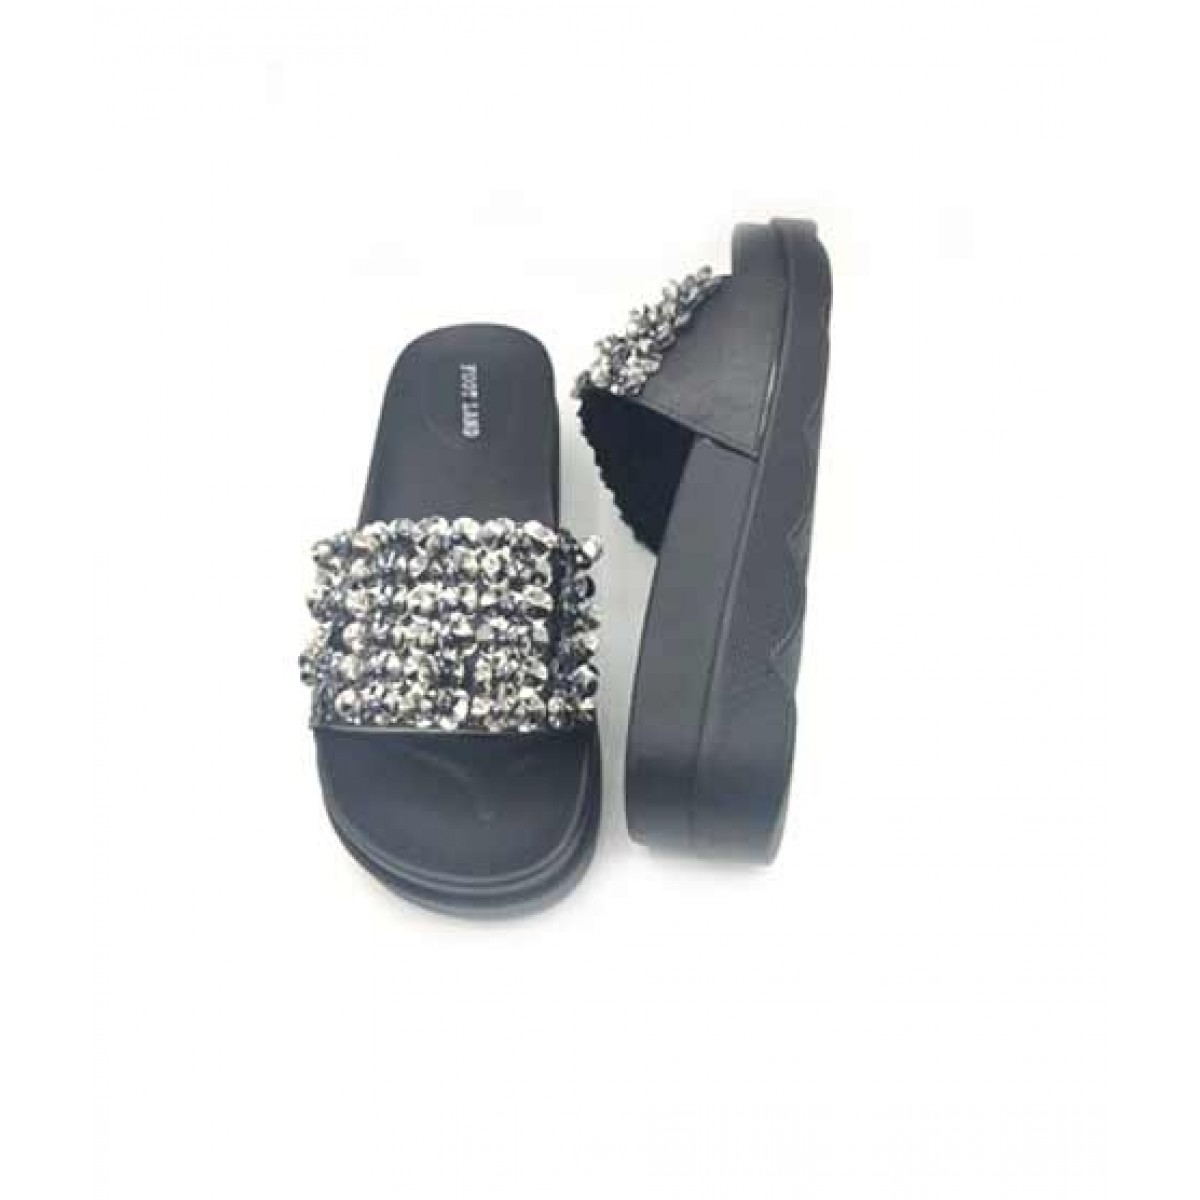 Shoppinggaardi Trendy Slides Slippers For Women (SG-FT3)